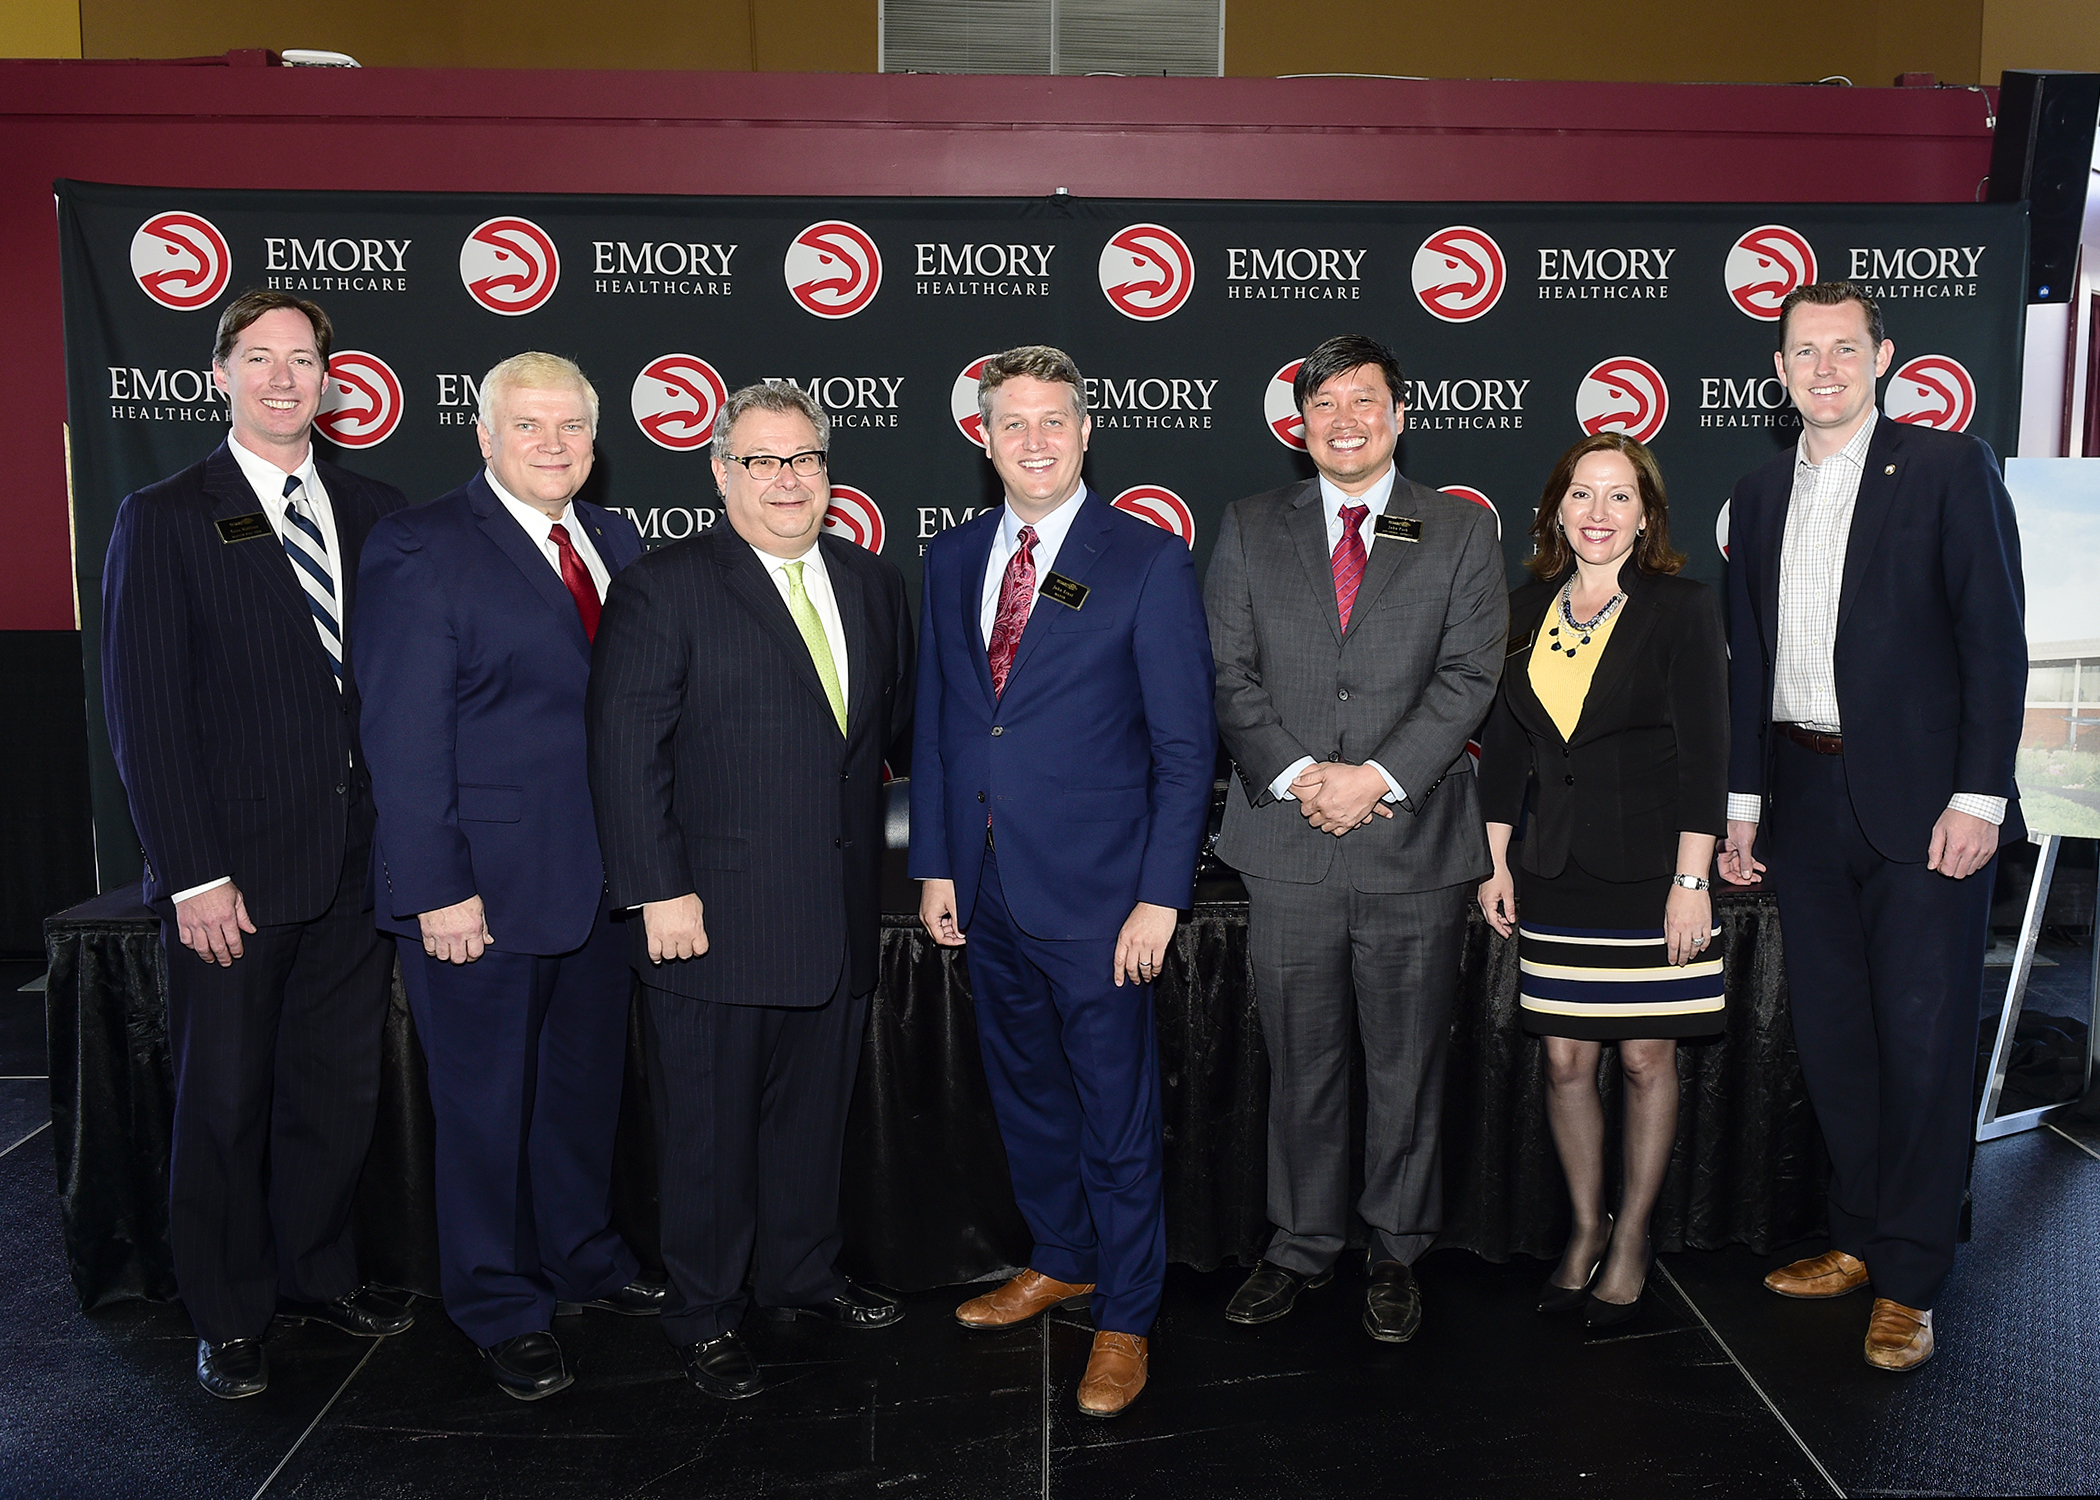 Linley helped bring Emory Healthcare and the Atlanta Hawks to Brookhaven